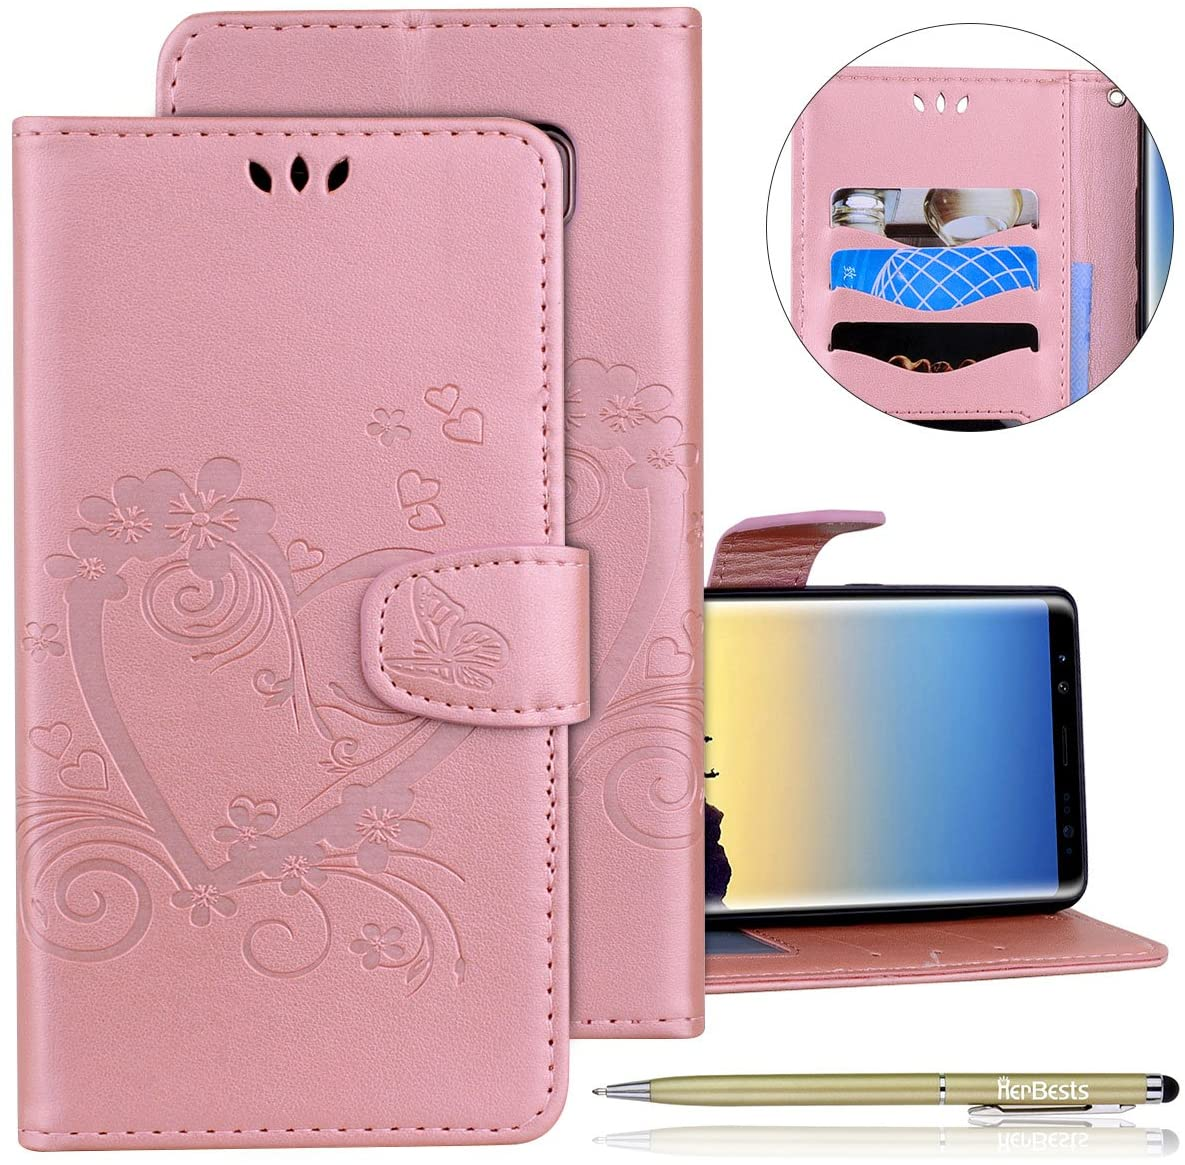 Herbests Compatible with Samsung Galaxy Note 8 Wallet Case Embossed Love Heart Butterfly 3D Design PU Leather Magnetic Flip Protective Case with Kickstand Card Slots Wrist Strap,Rose Gold